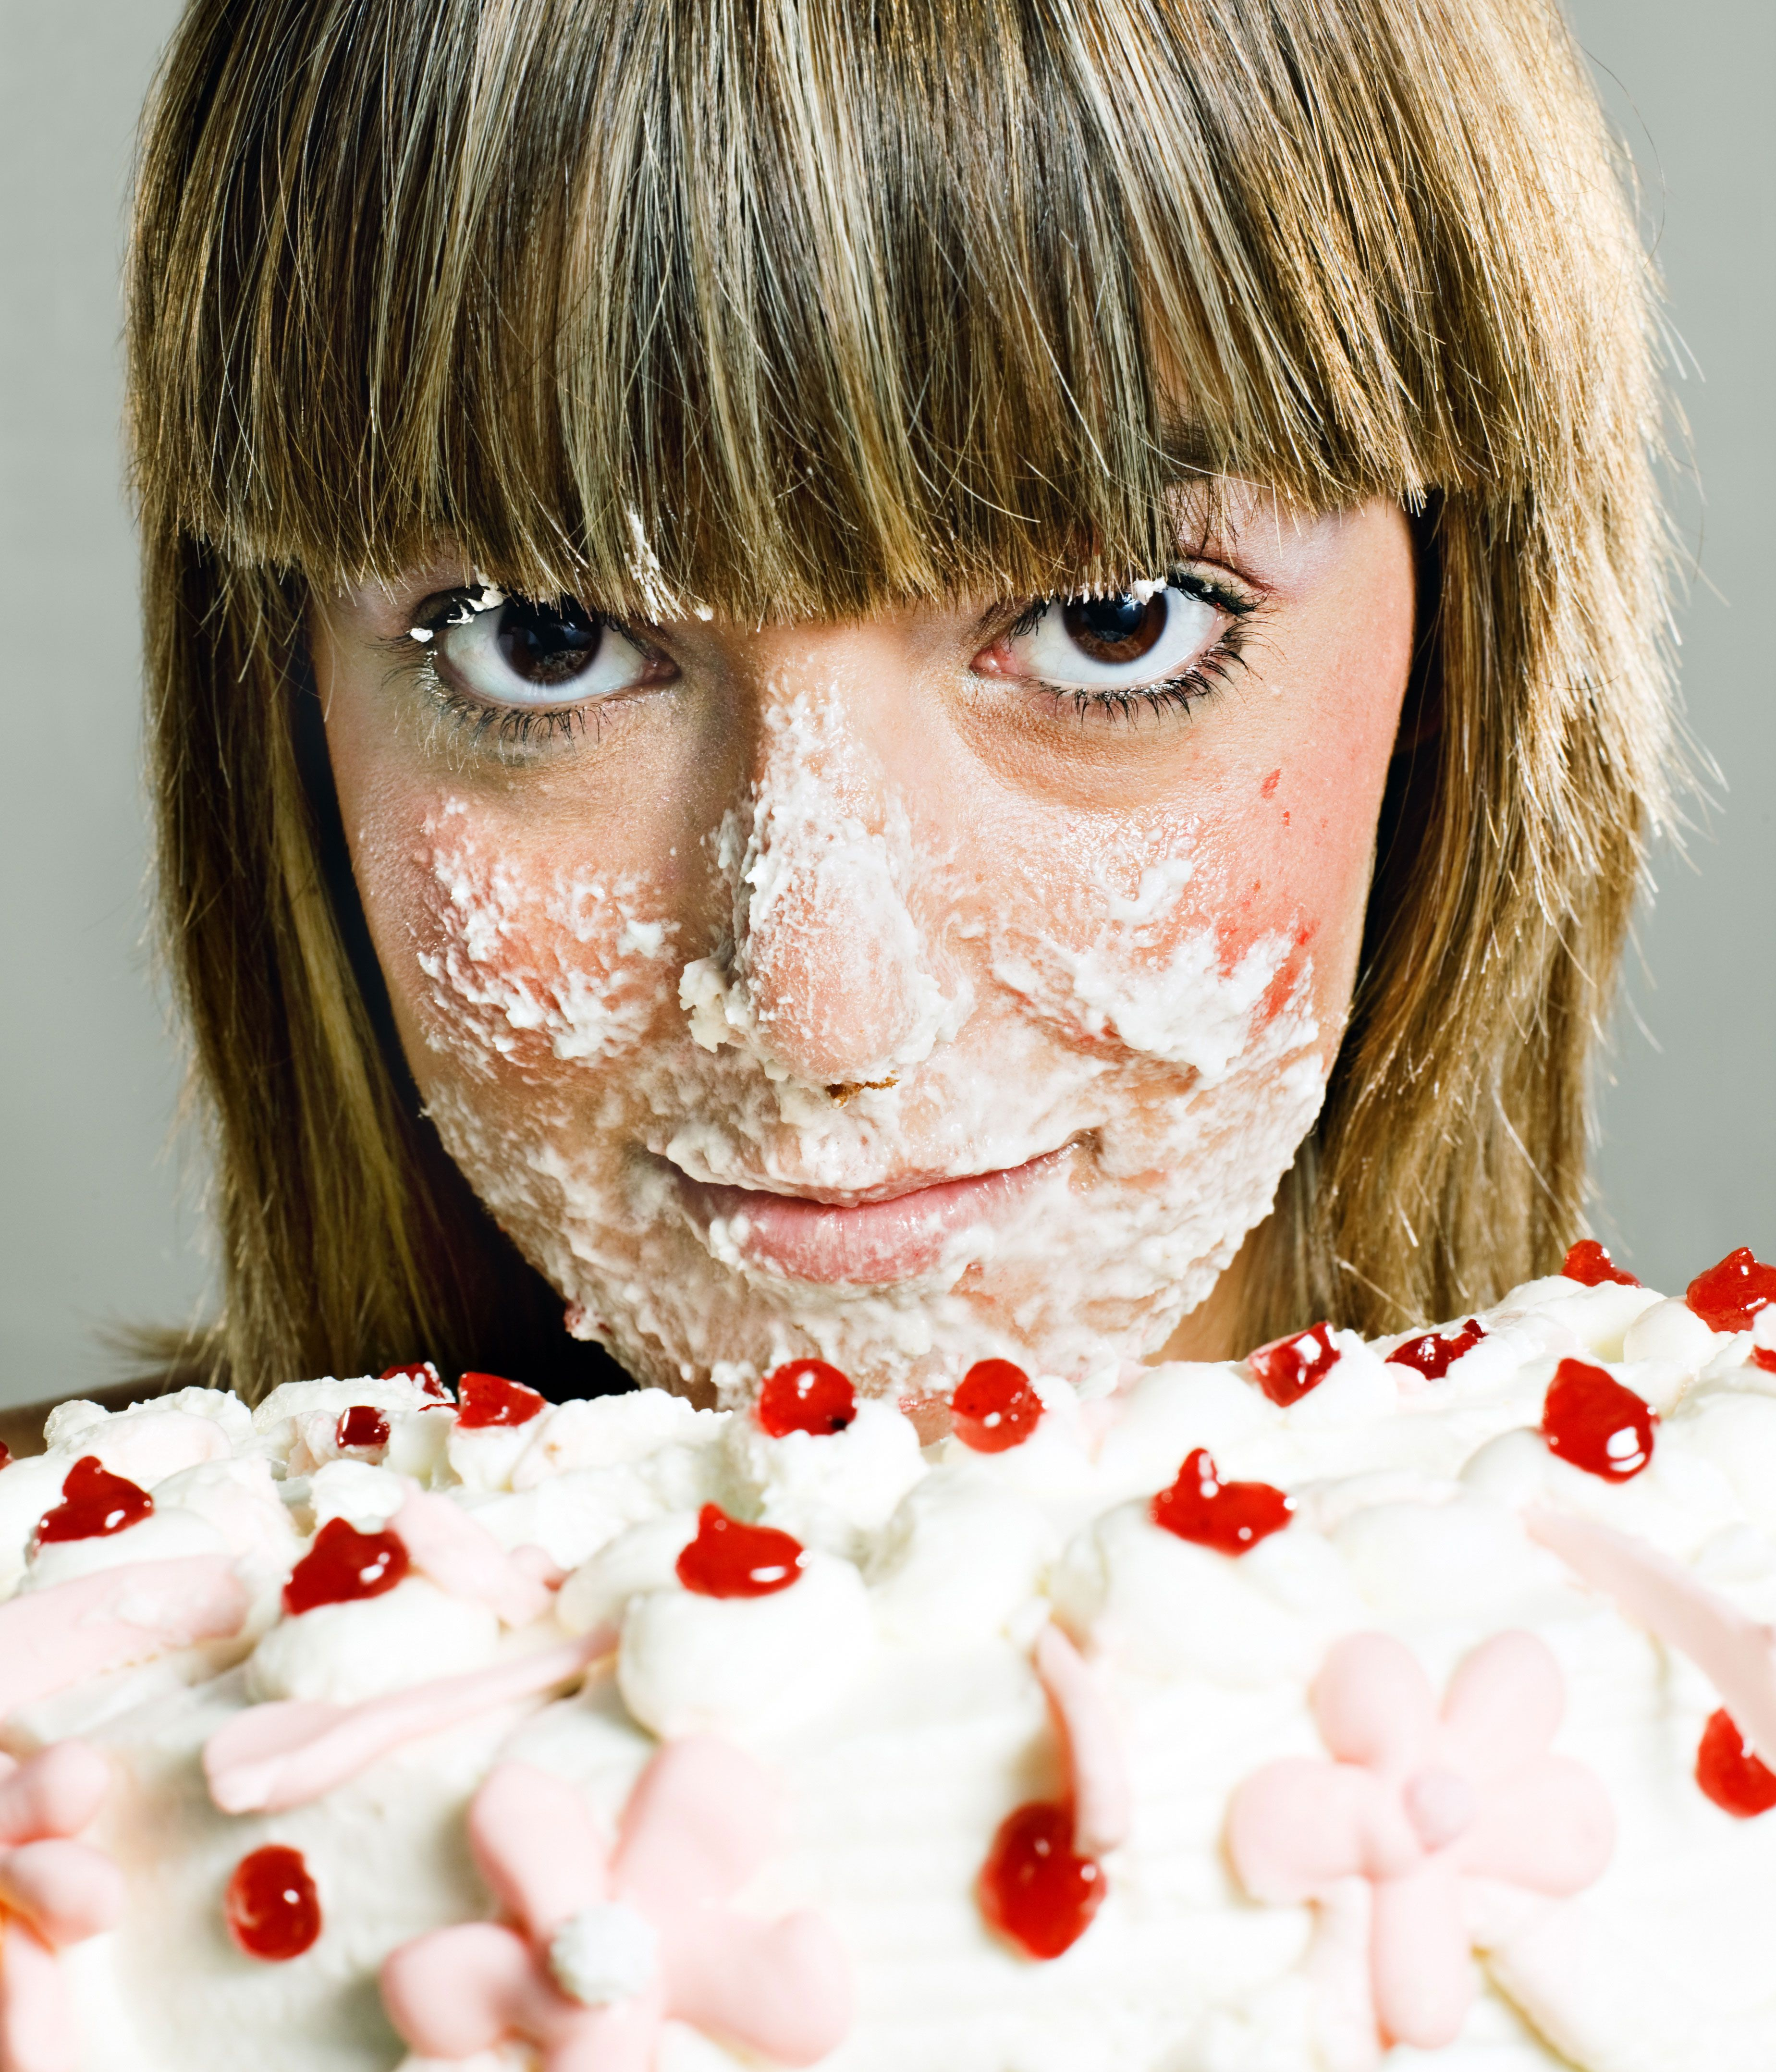 Sploshing Is the Hot, Messy Sexual Fetish Where You Get Covered in Food